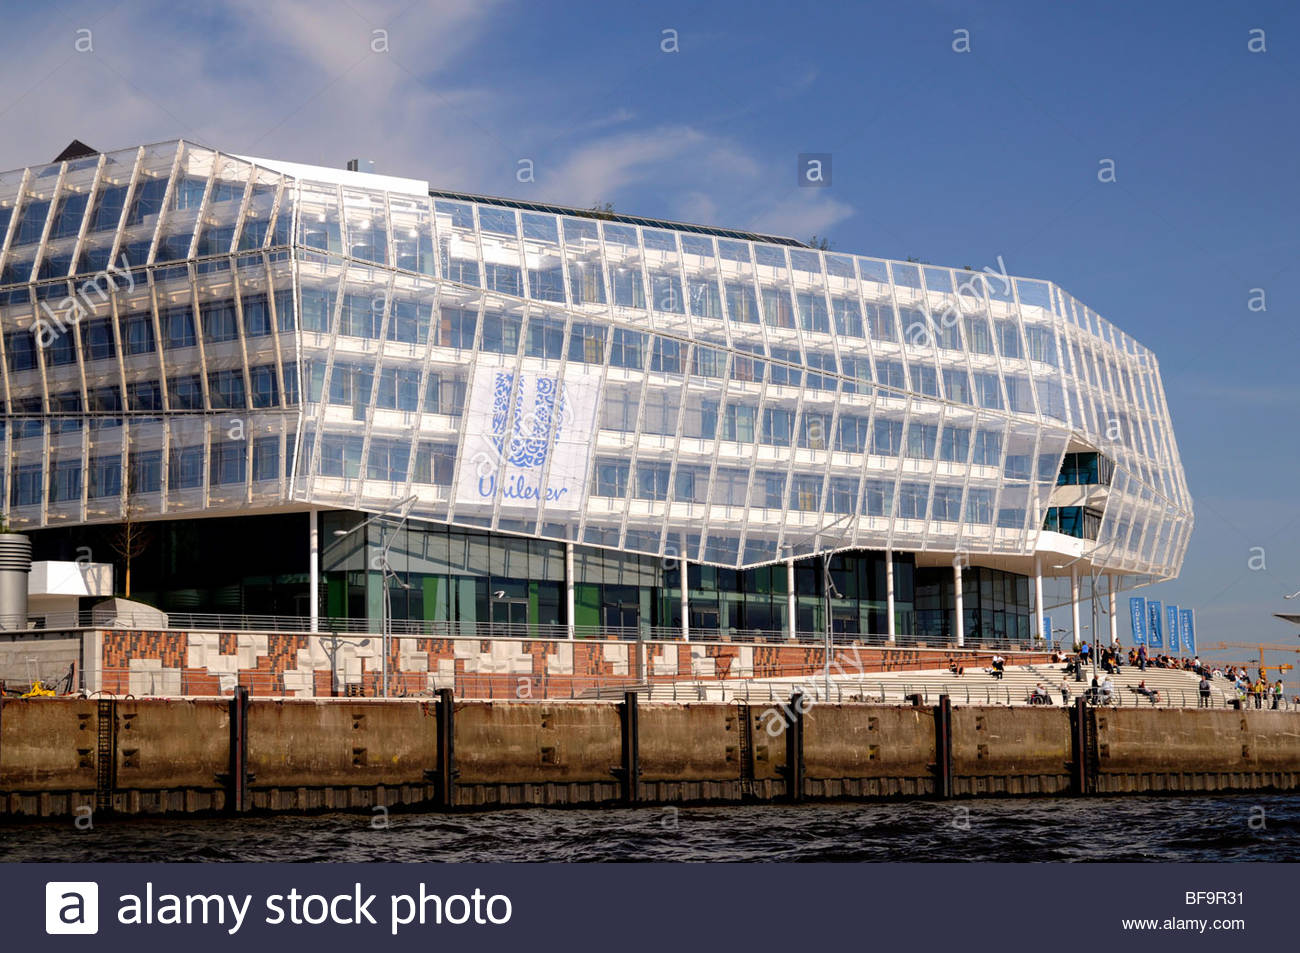 Unilever germany headquarters stock photos unilever germany headquarters stock images alamy - Kempinski head office geneva ...